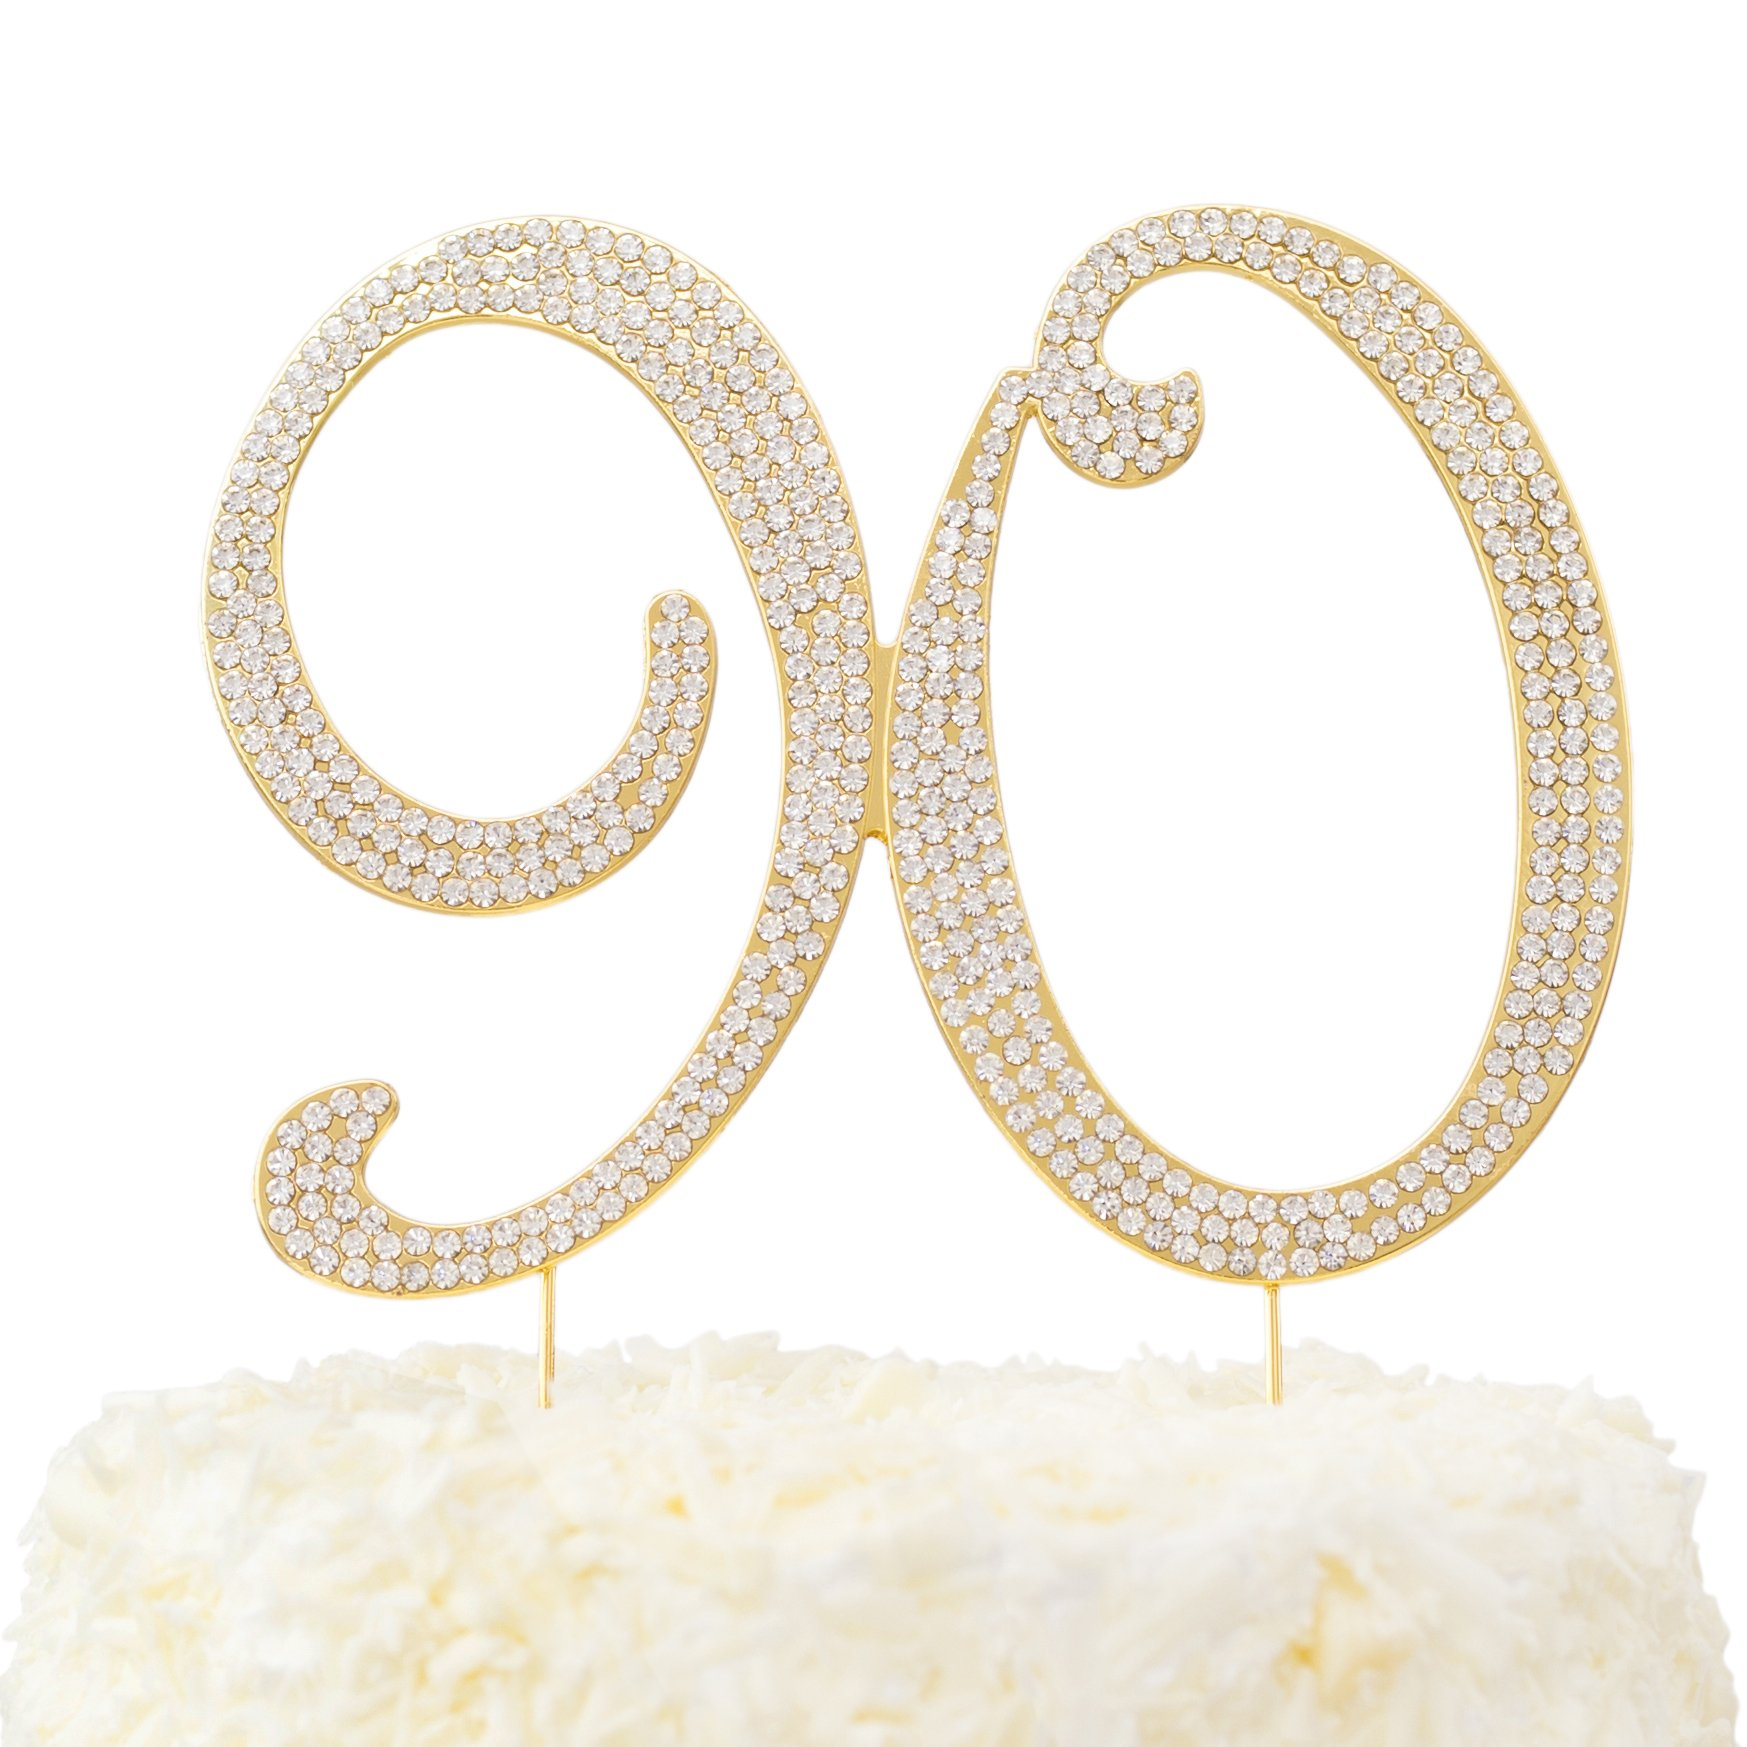 LOVENJOY with Gift Box Rhinestone 90 Cake Topper for 90th Birthday Party Supplies Gold, 5.7 X 4.5''